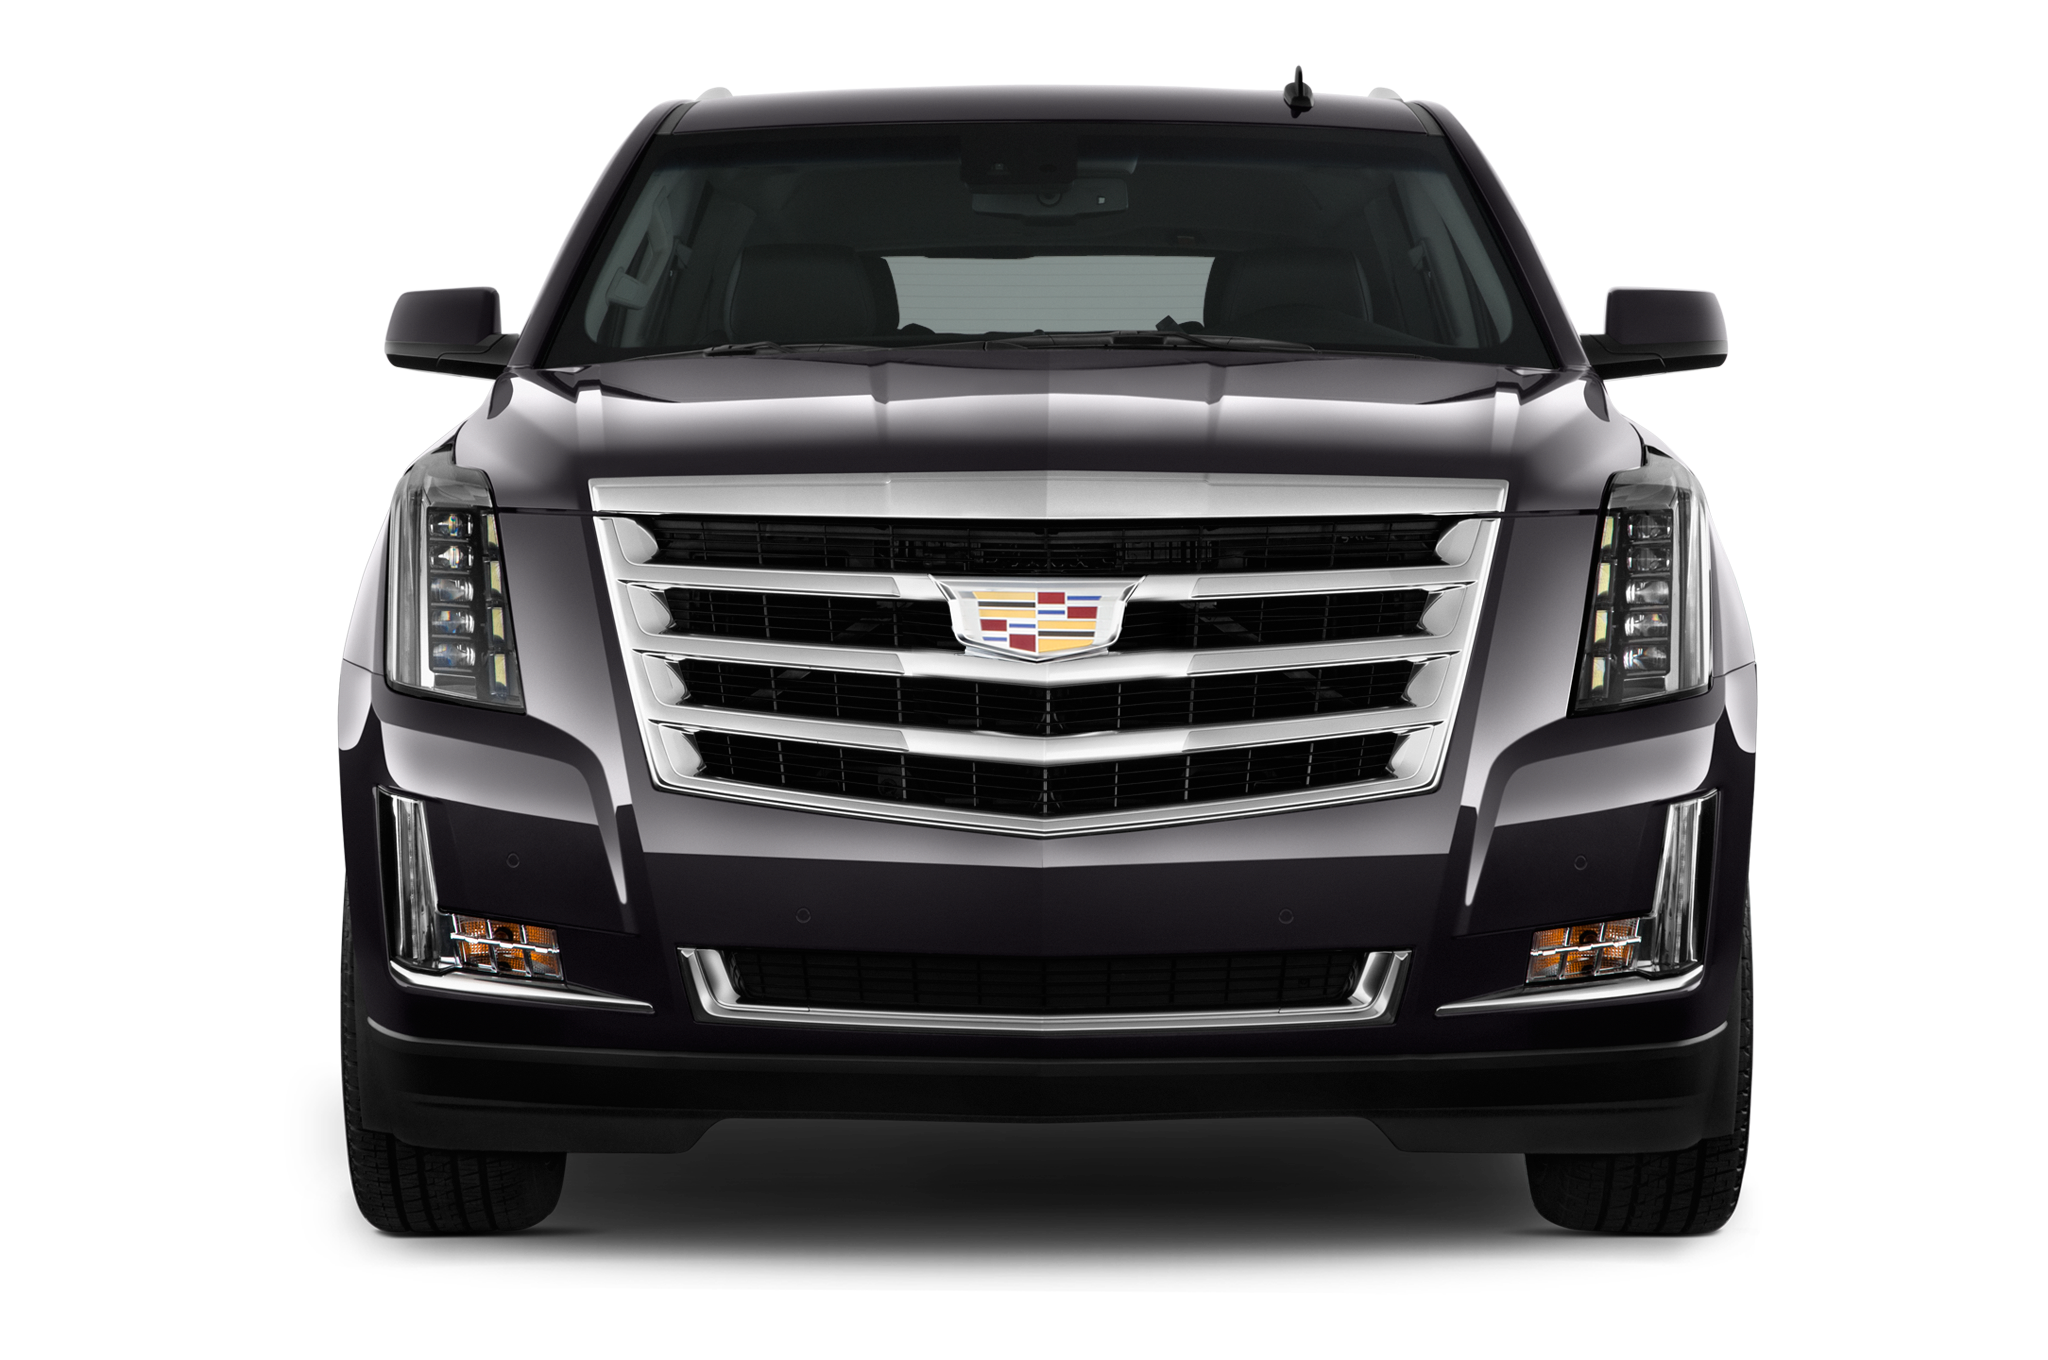 2020 Cadillac Escalade and Escalade ESV: What to Expect | Automobile ...